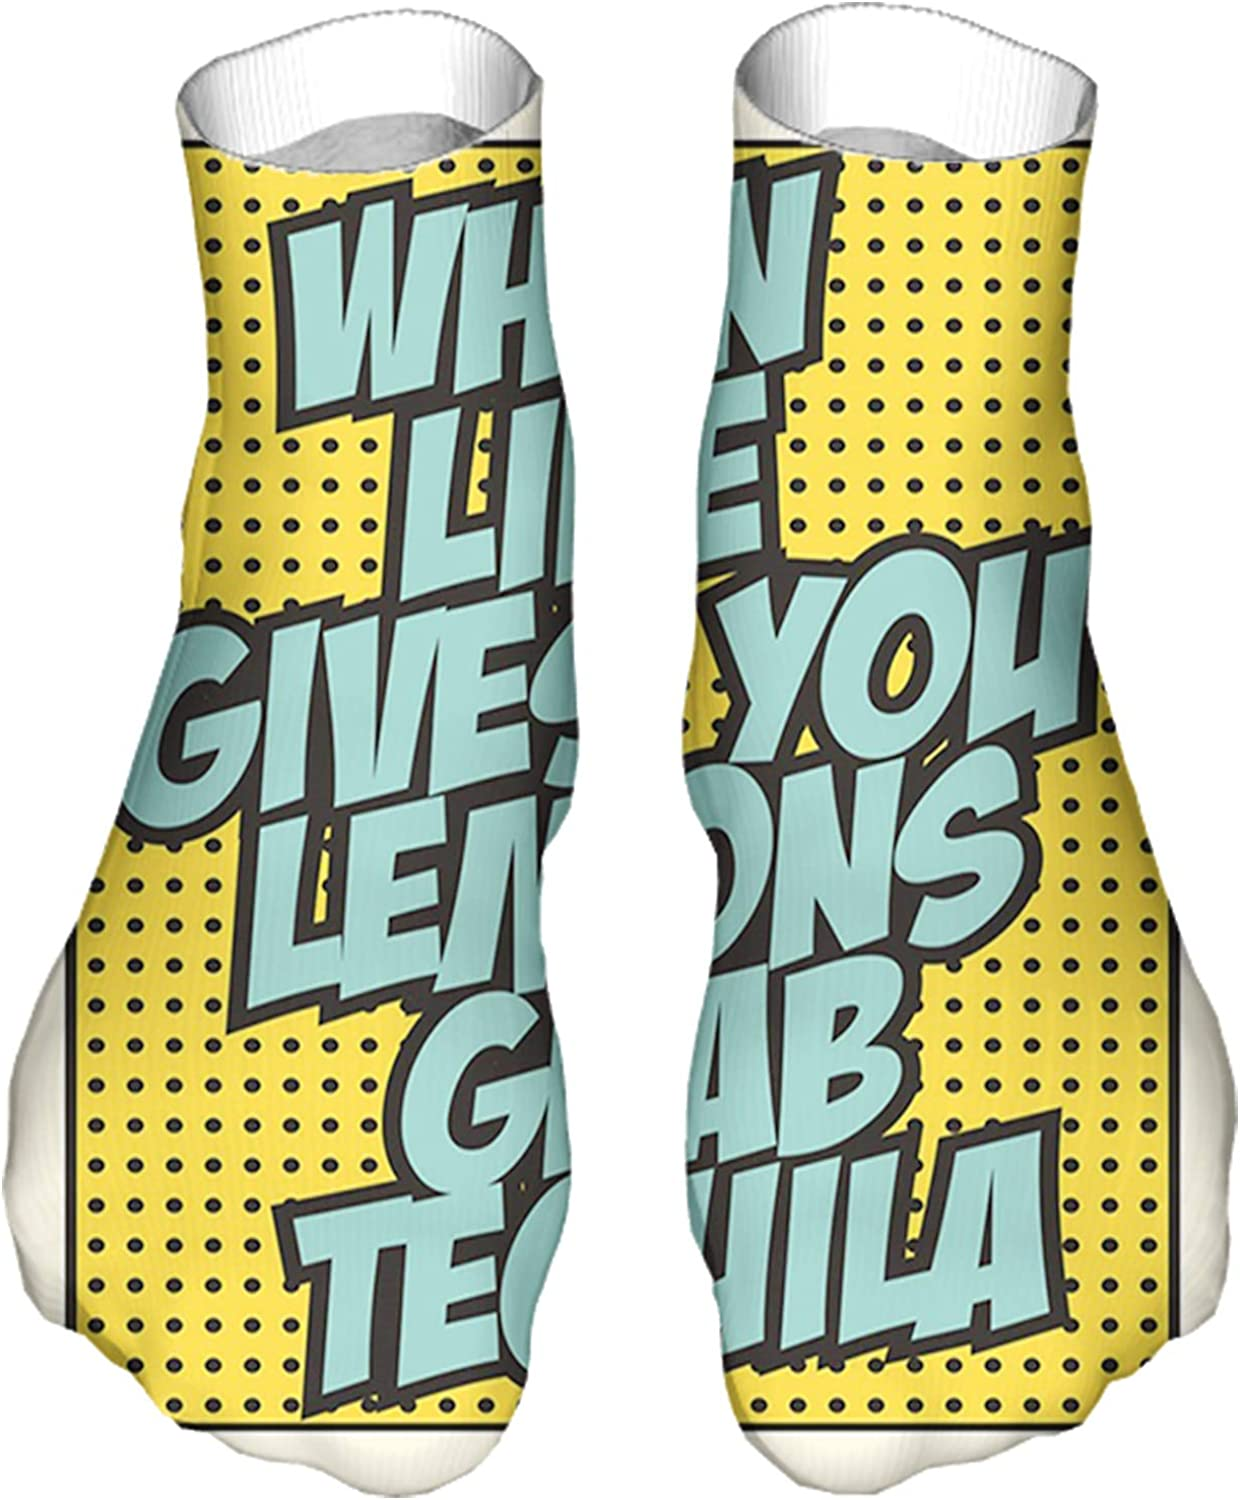 Men's and Women's Fun Socks Printed Cool Novelty Funny Socks,Funny Quote Retro Design When Life Gives You Lemons Grab